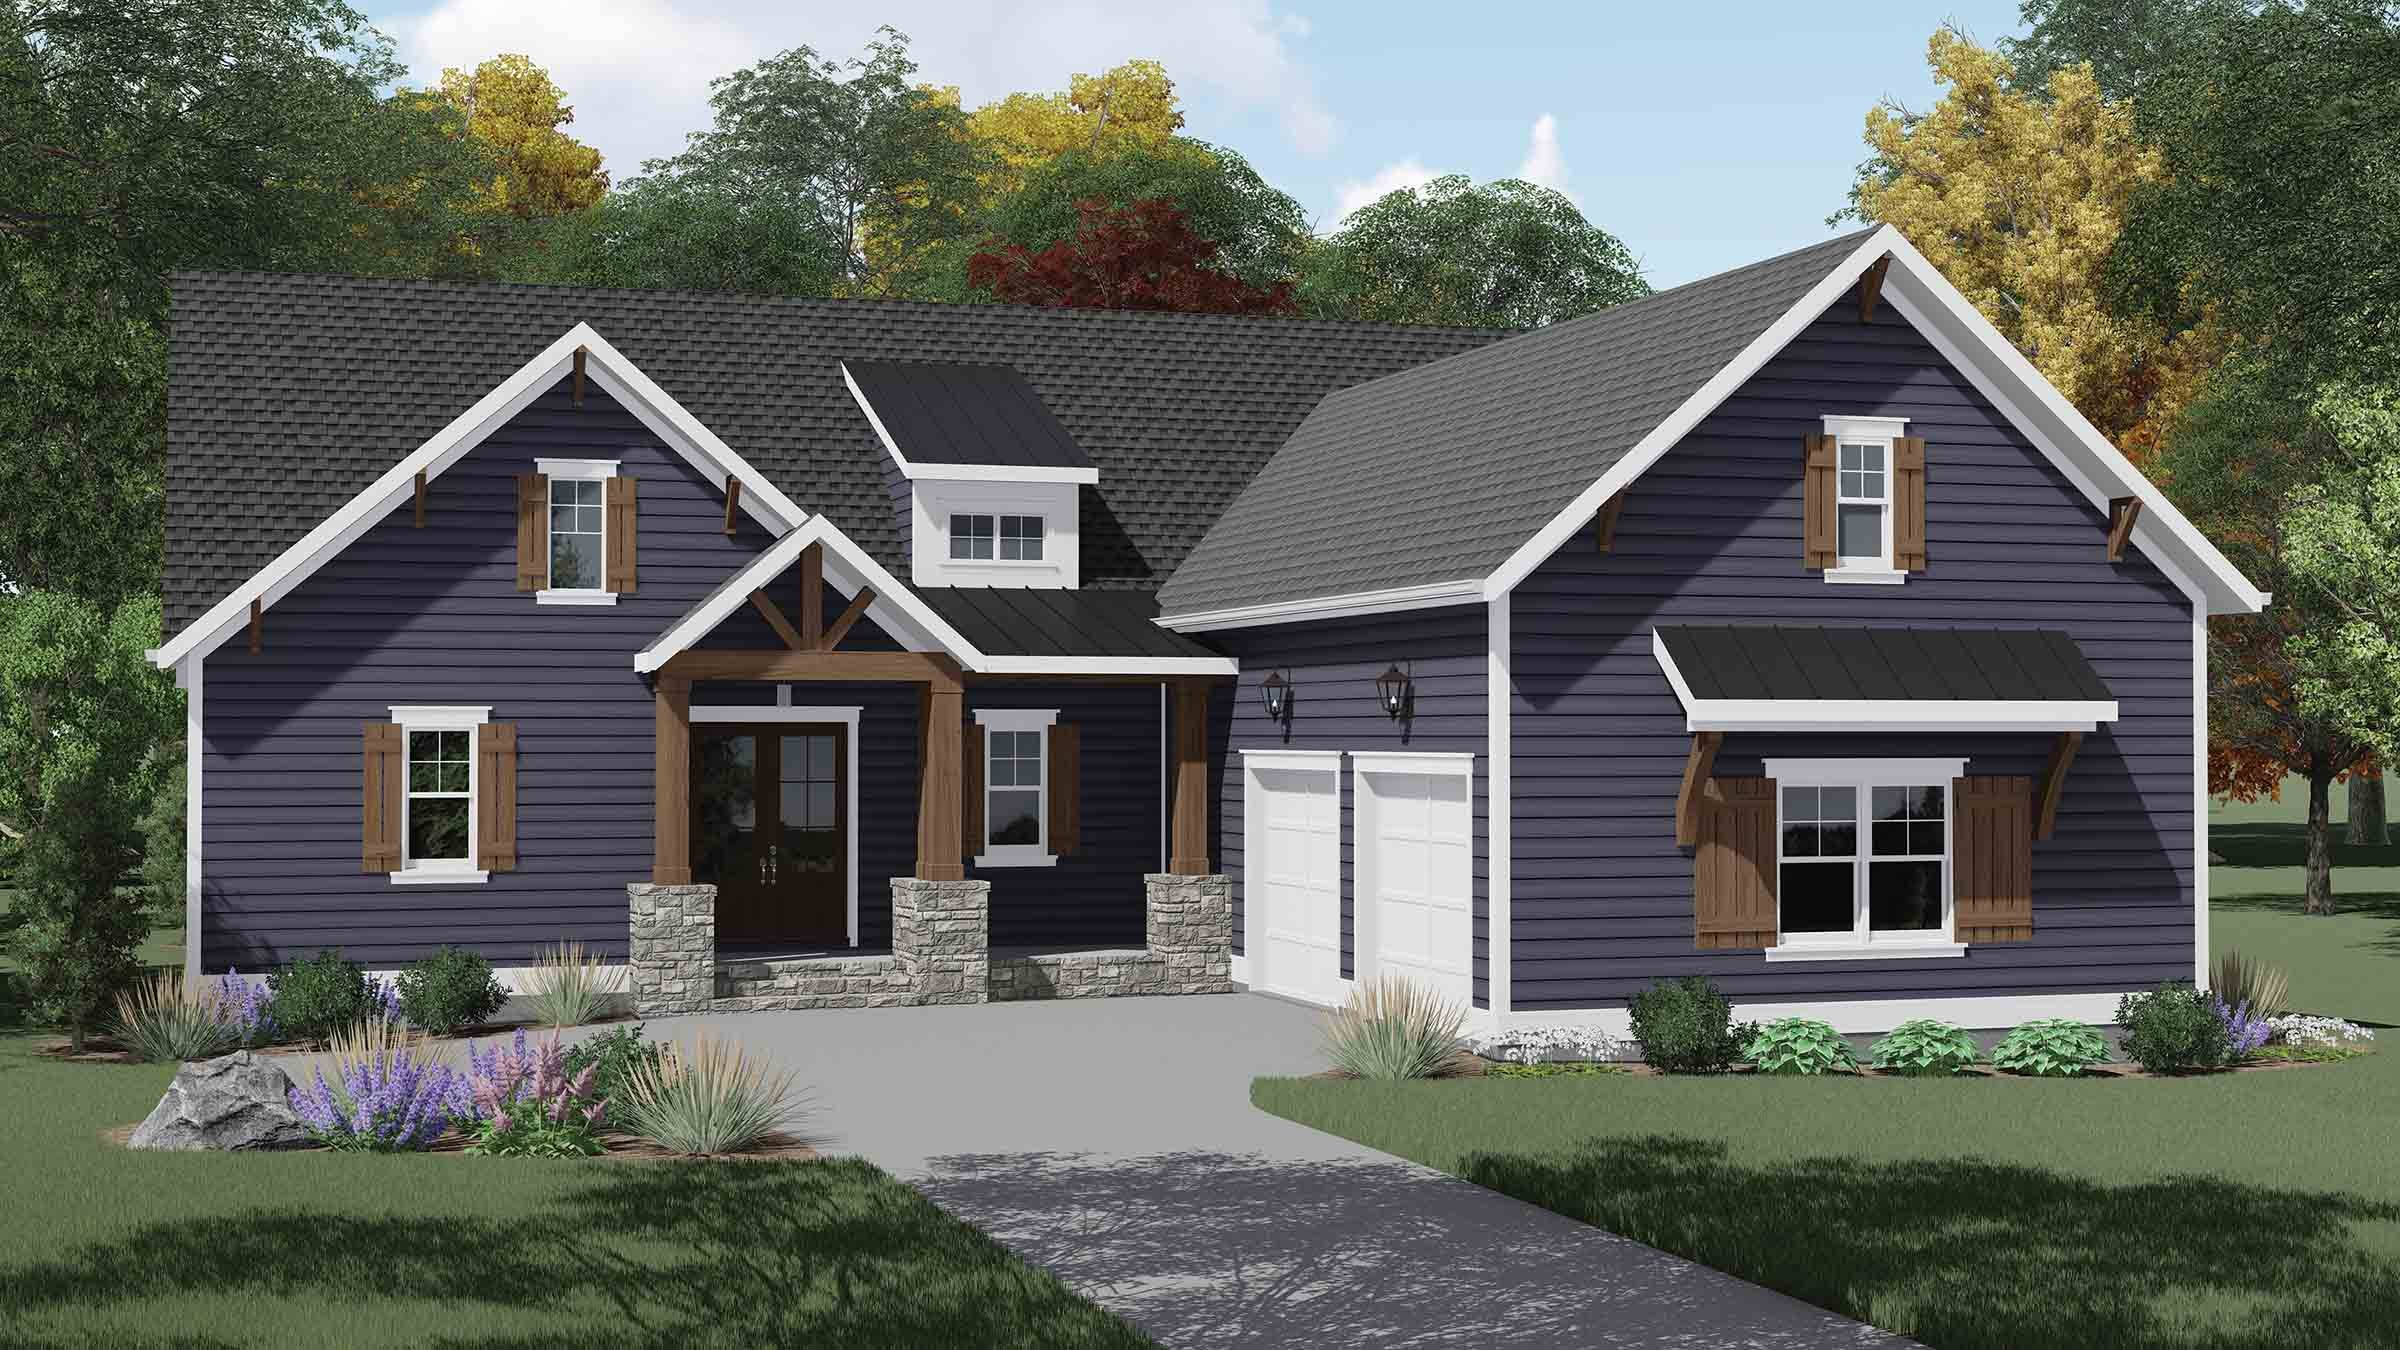 Acacia 1579F Home Plan - Elevation A